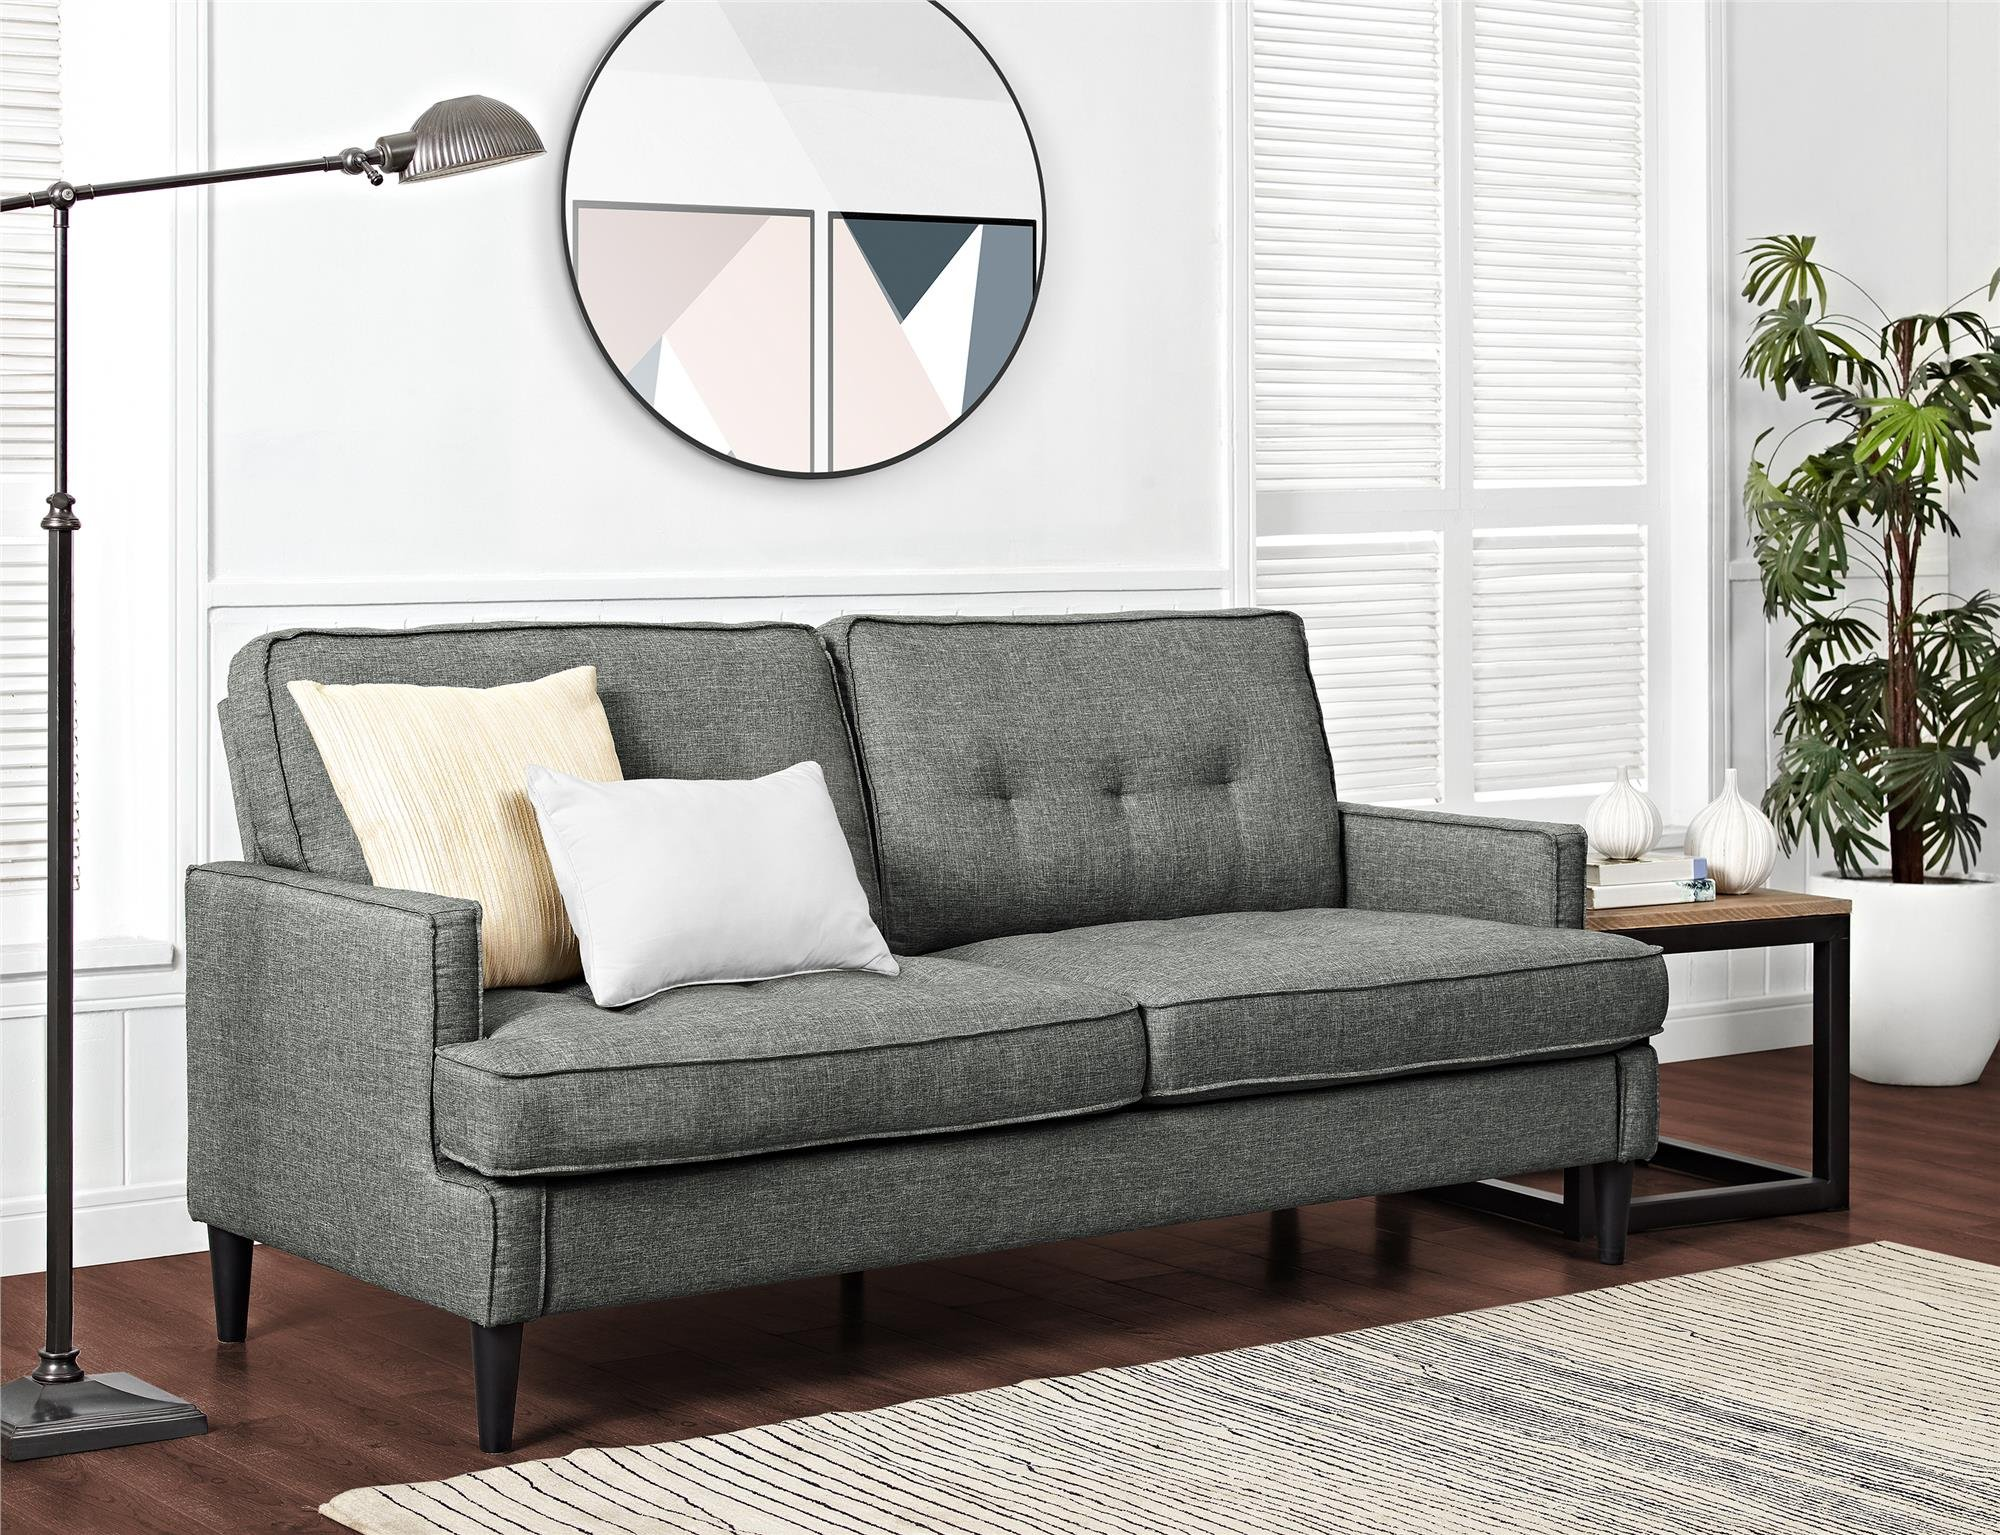 REALROOMS Dana Mid-Century Modern Sofa, Living Room Couch, Gray by REALROOMS